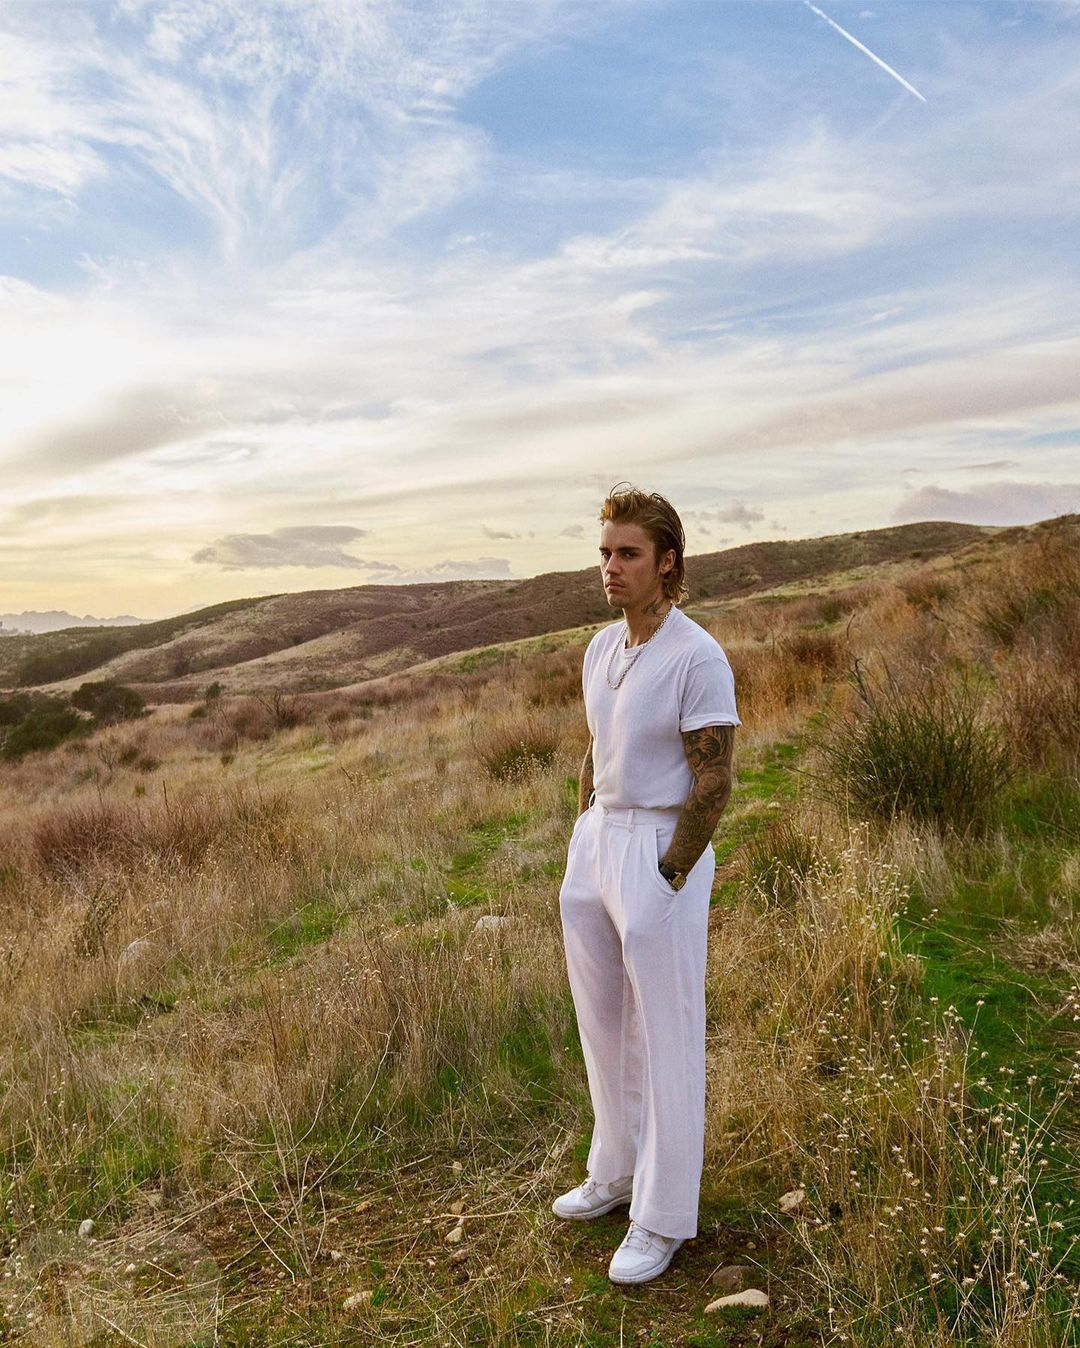 Justin Bieber Speaks To GQ On His Battle With Drug Addiction And Marriage To Hailey